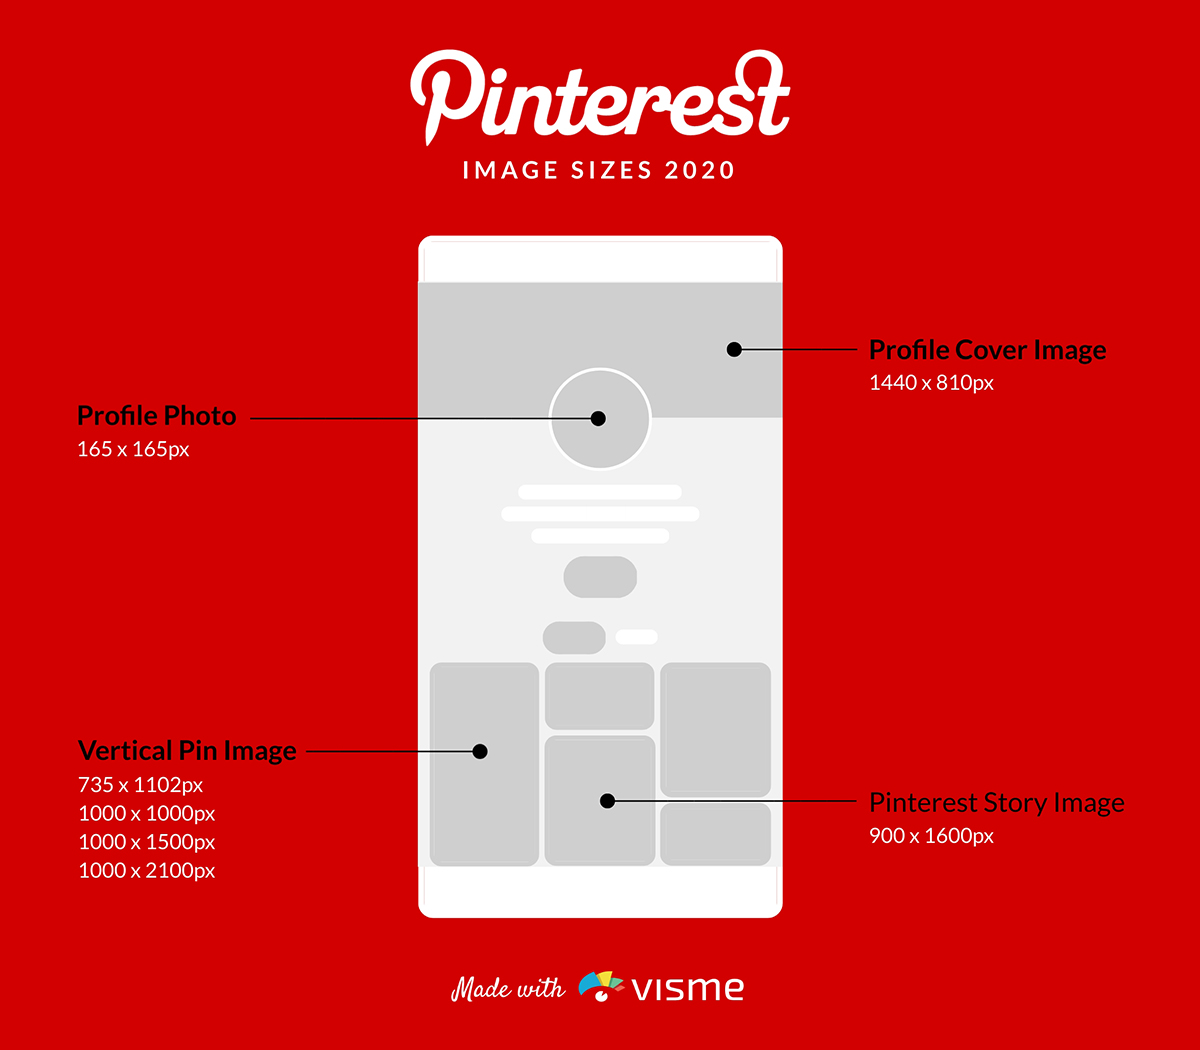 social media image sizes - pinterest image sizes